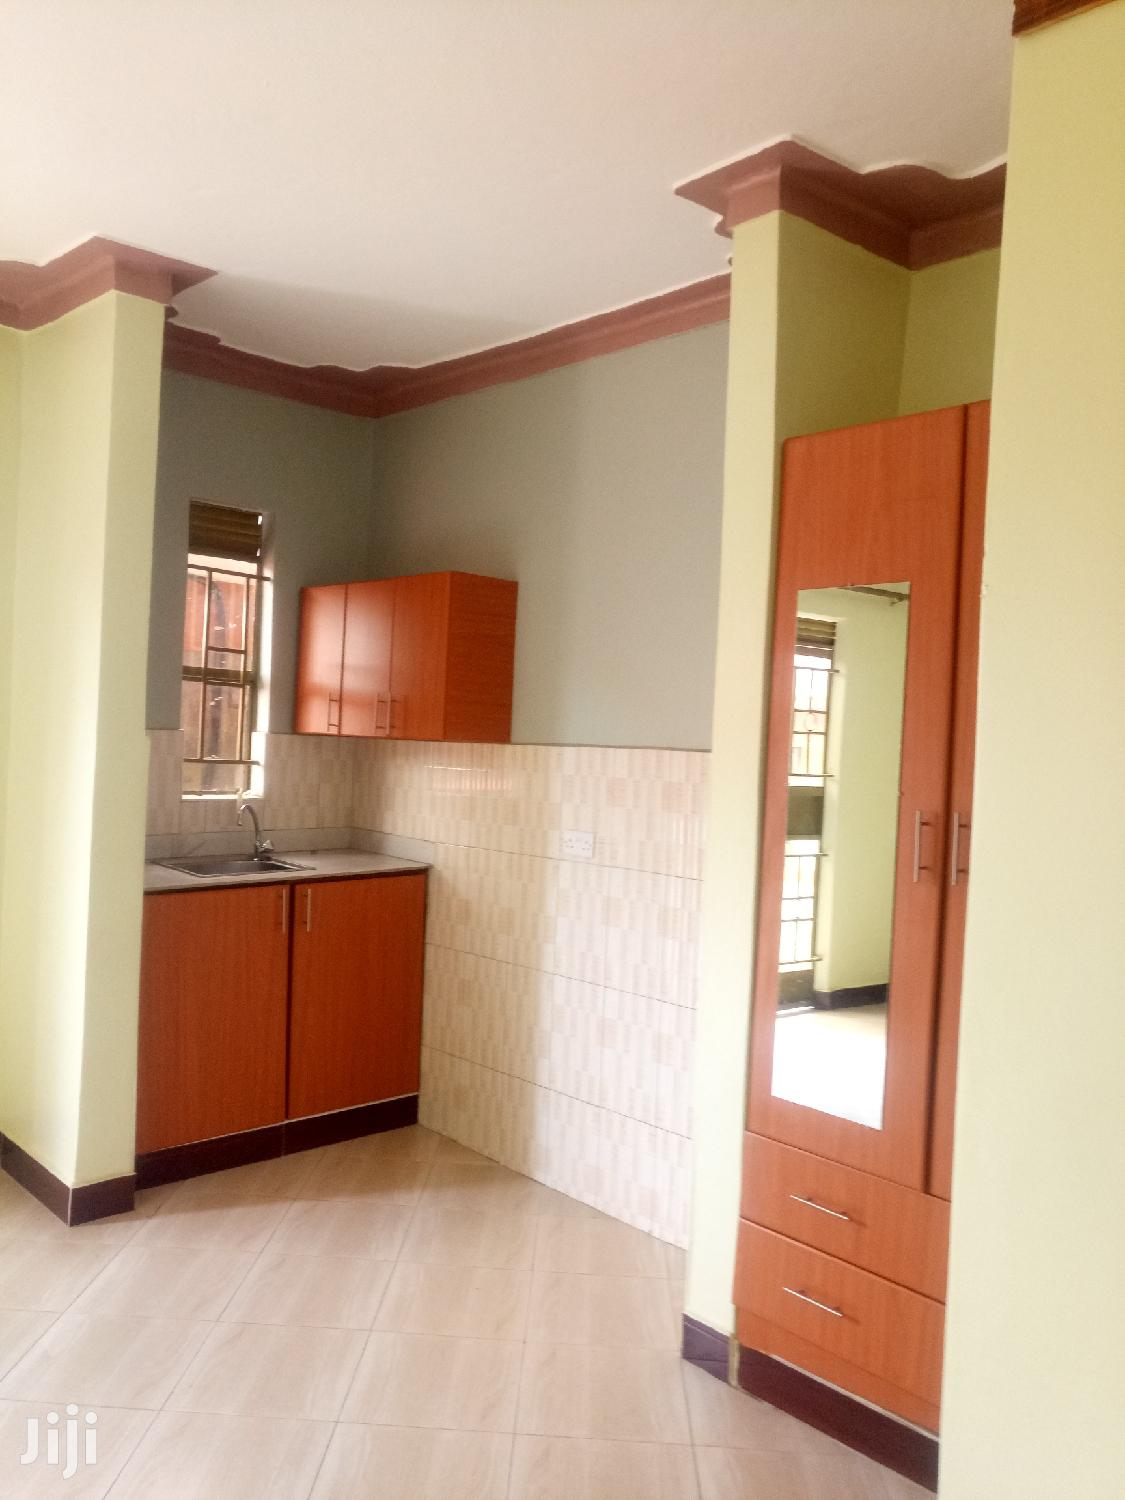 Mutungo Studio Single Room House for Rent